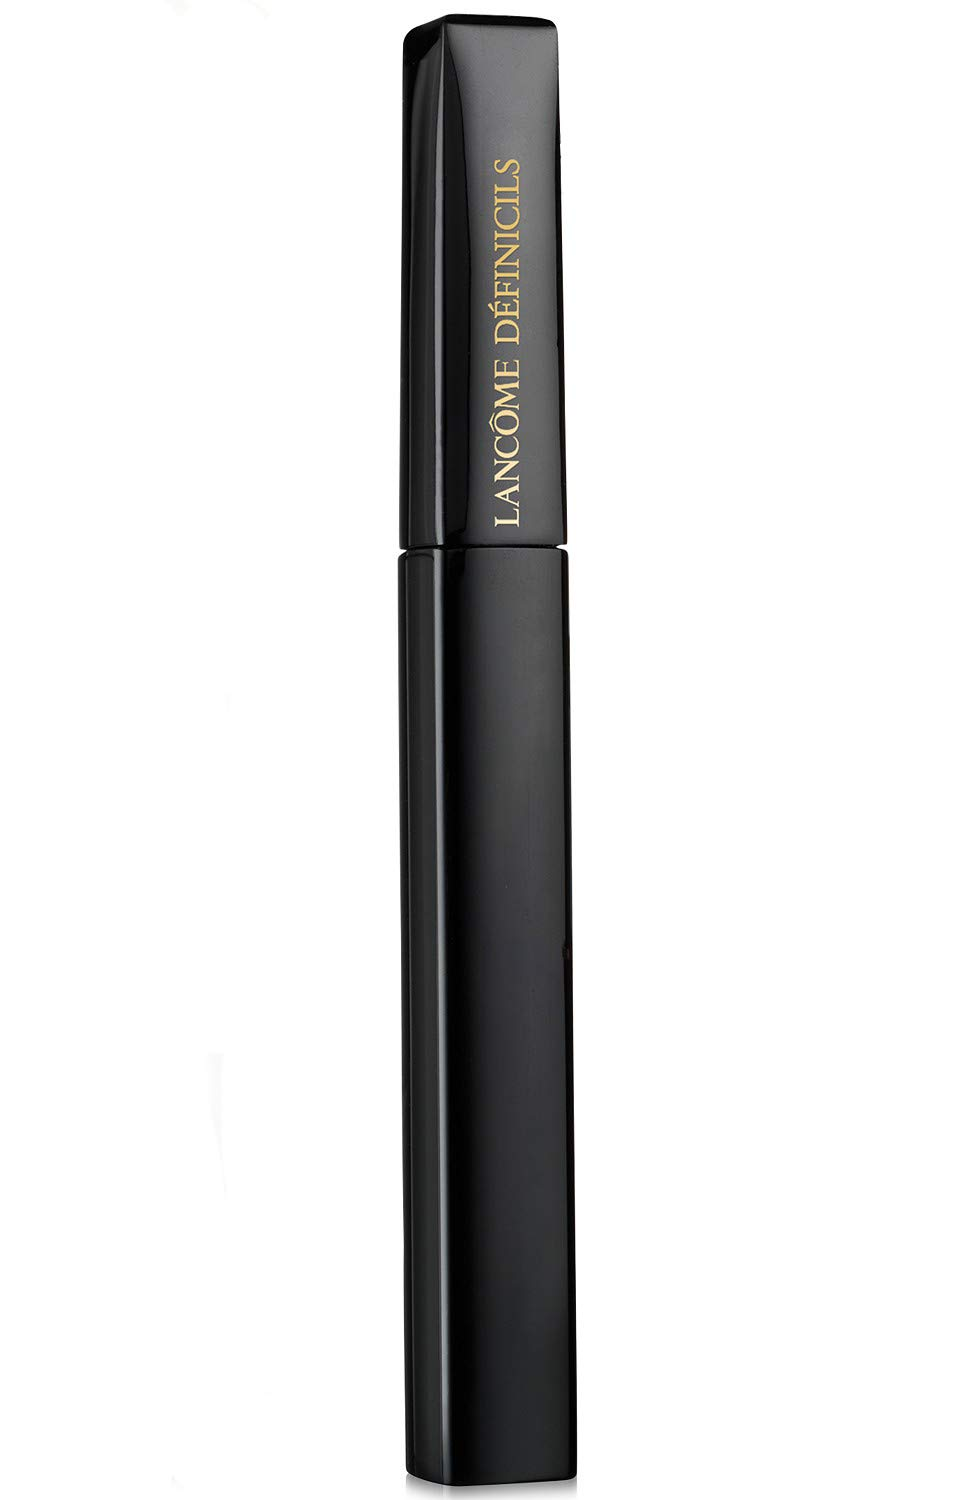 Lancome Lancome definicils high definition mascara - black, 0.60 Ounce